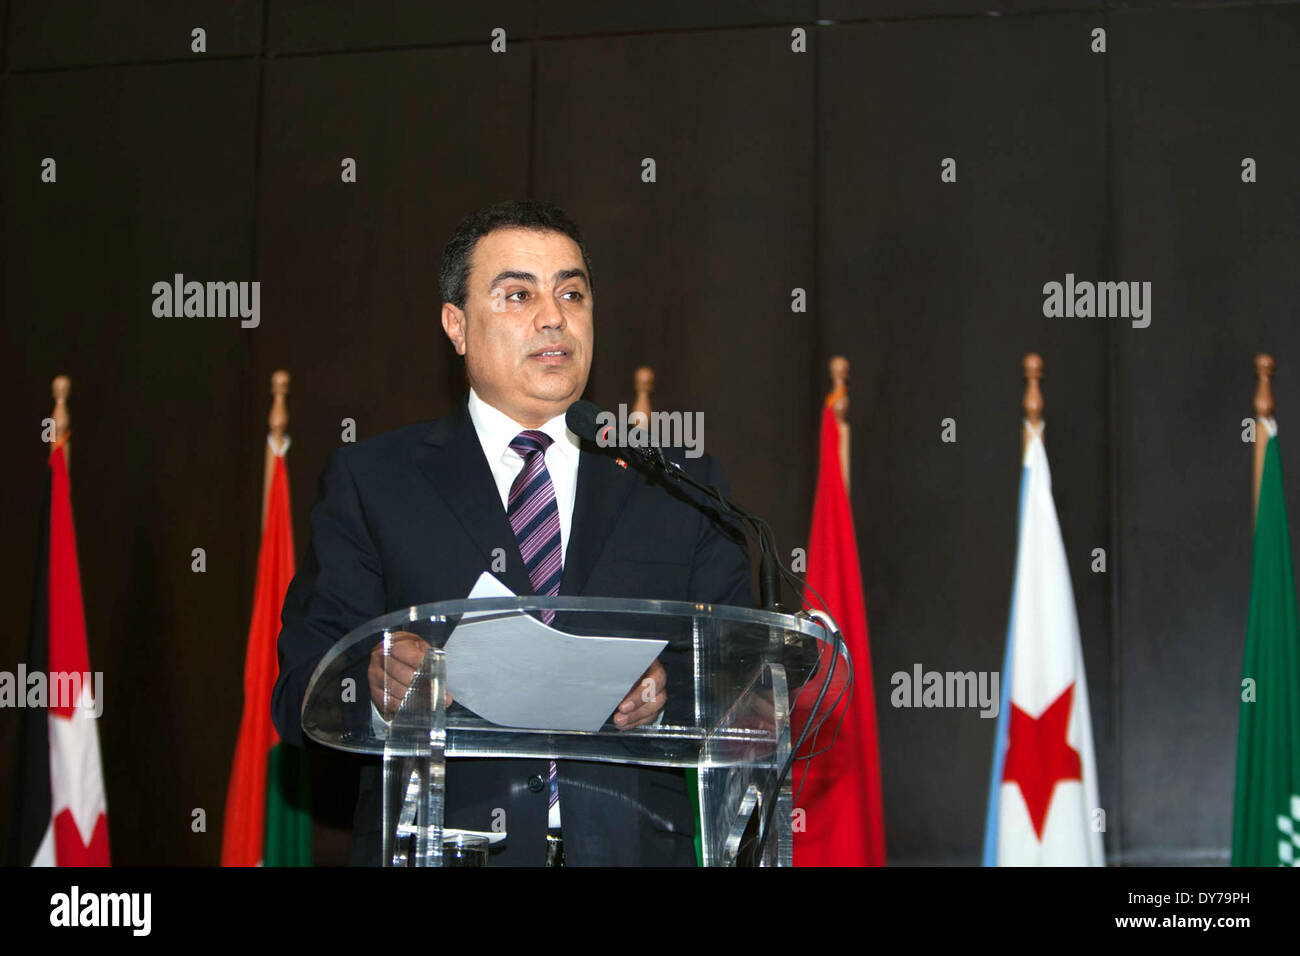 Tunis. 8th Apr, 2014. Tunisia's Prime Minister Mehdi Jomaa speaks during the opening ceremony of the forum of Arab Stock Photo